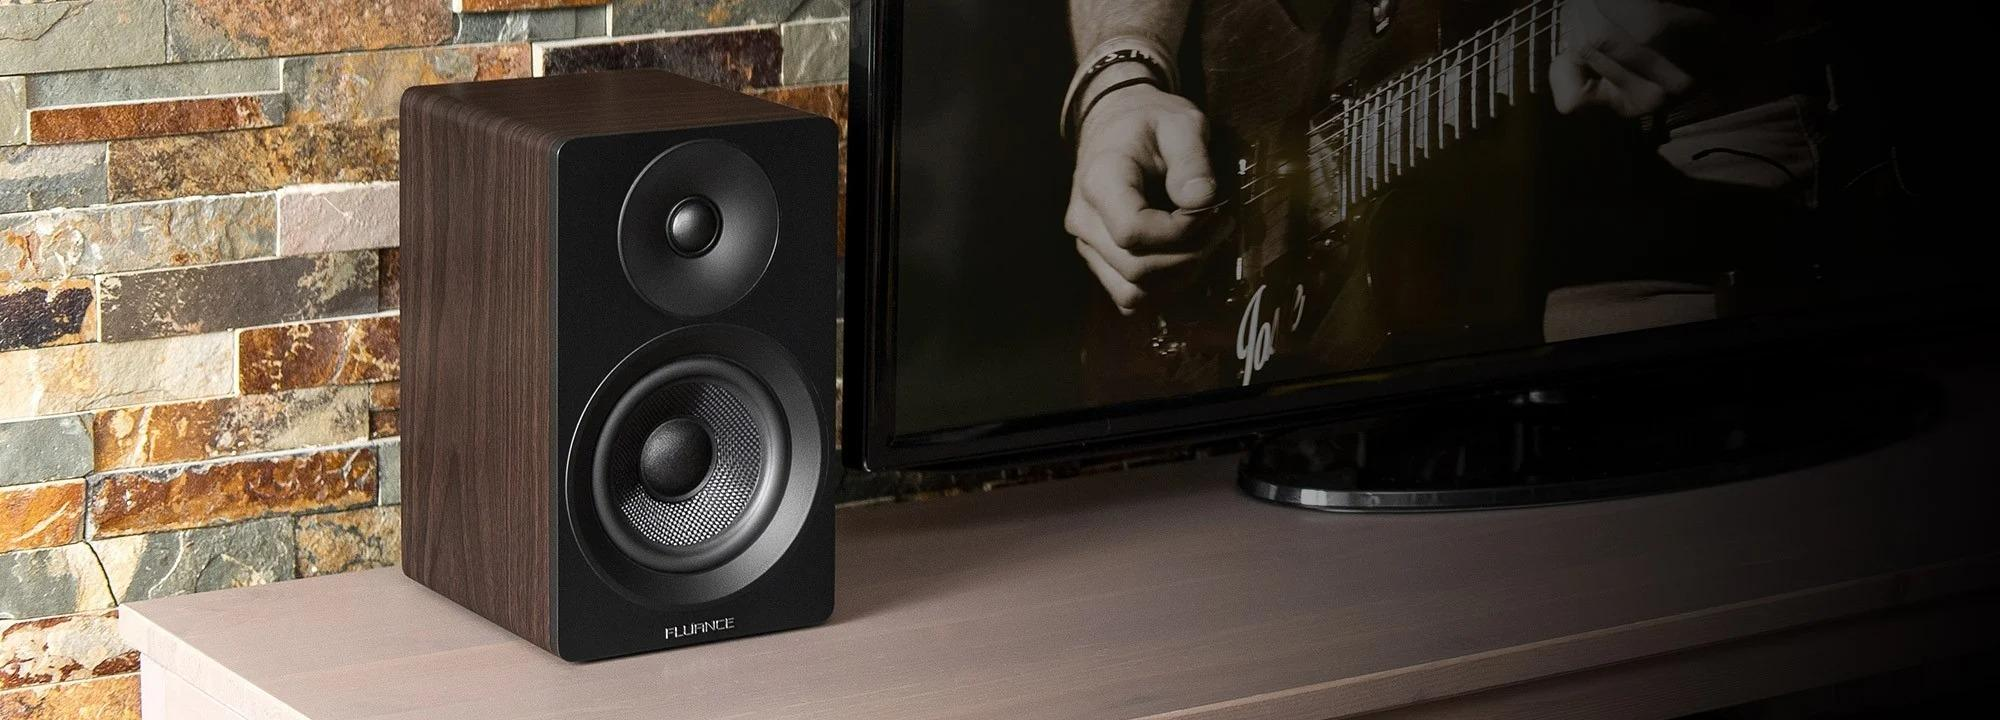 The Ai41 Powered Bookshelf Speakers offer great sound and connectivity options that should satisfy most listeners.